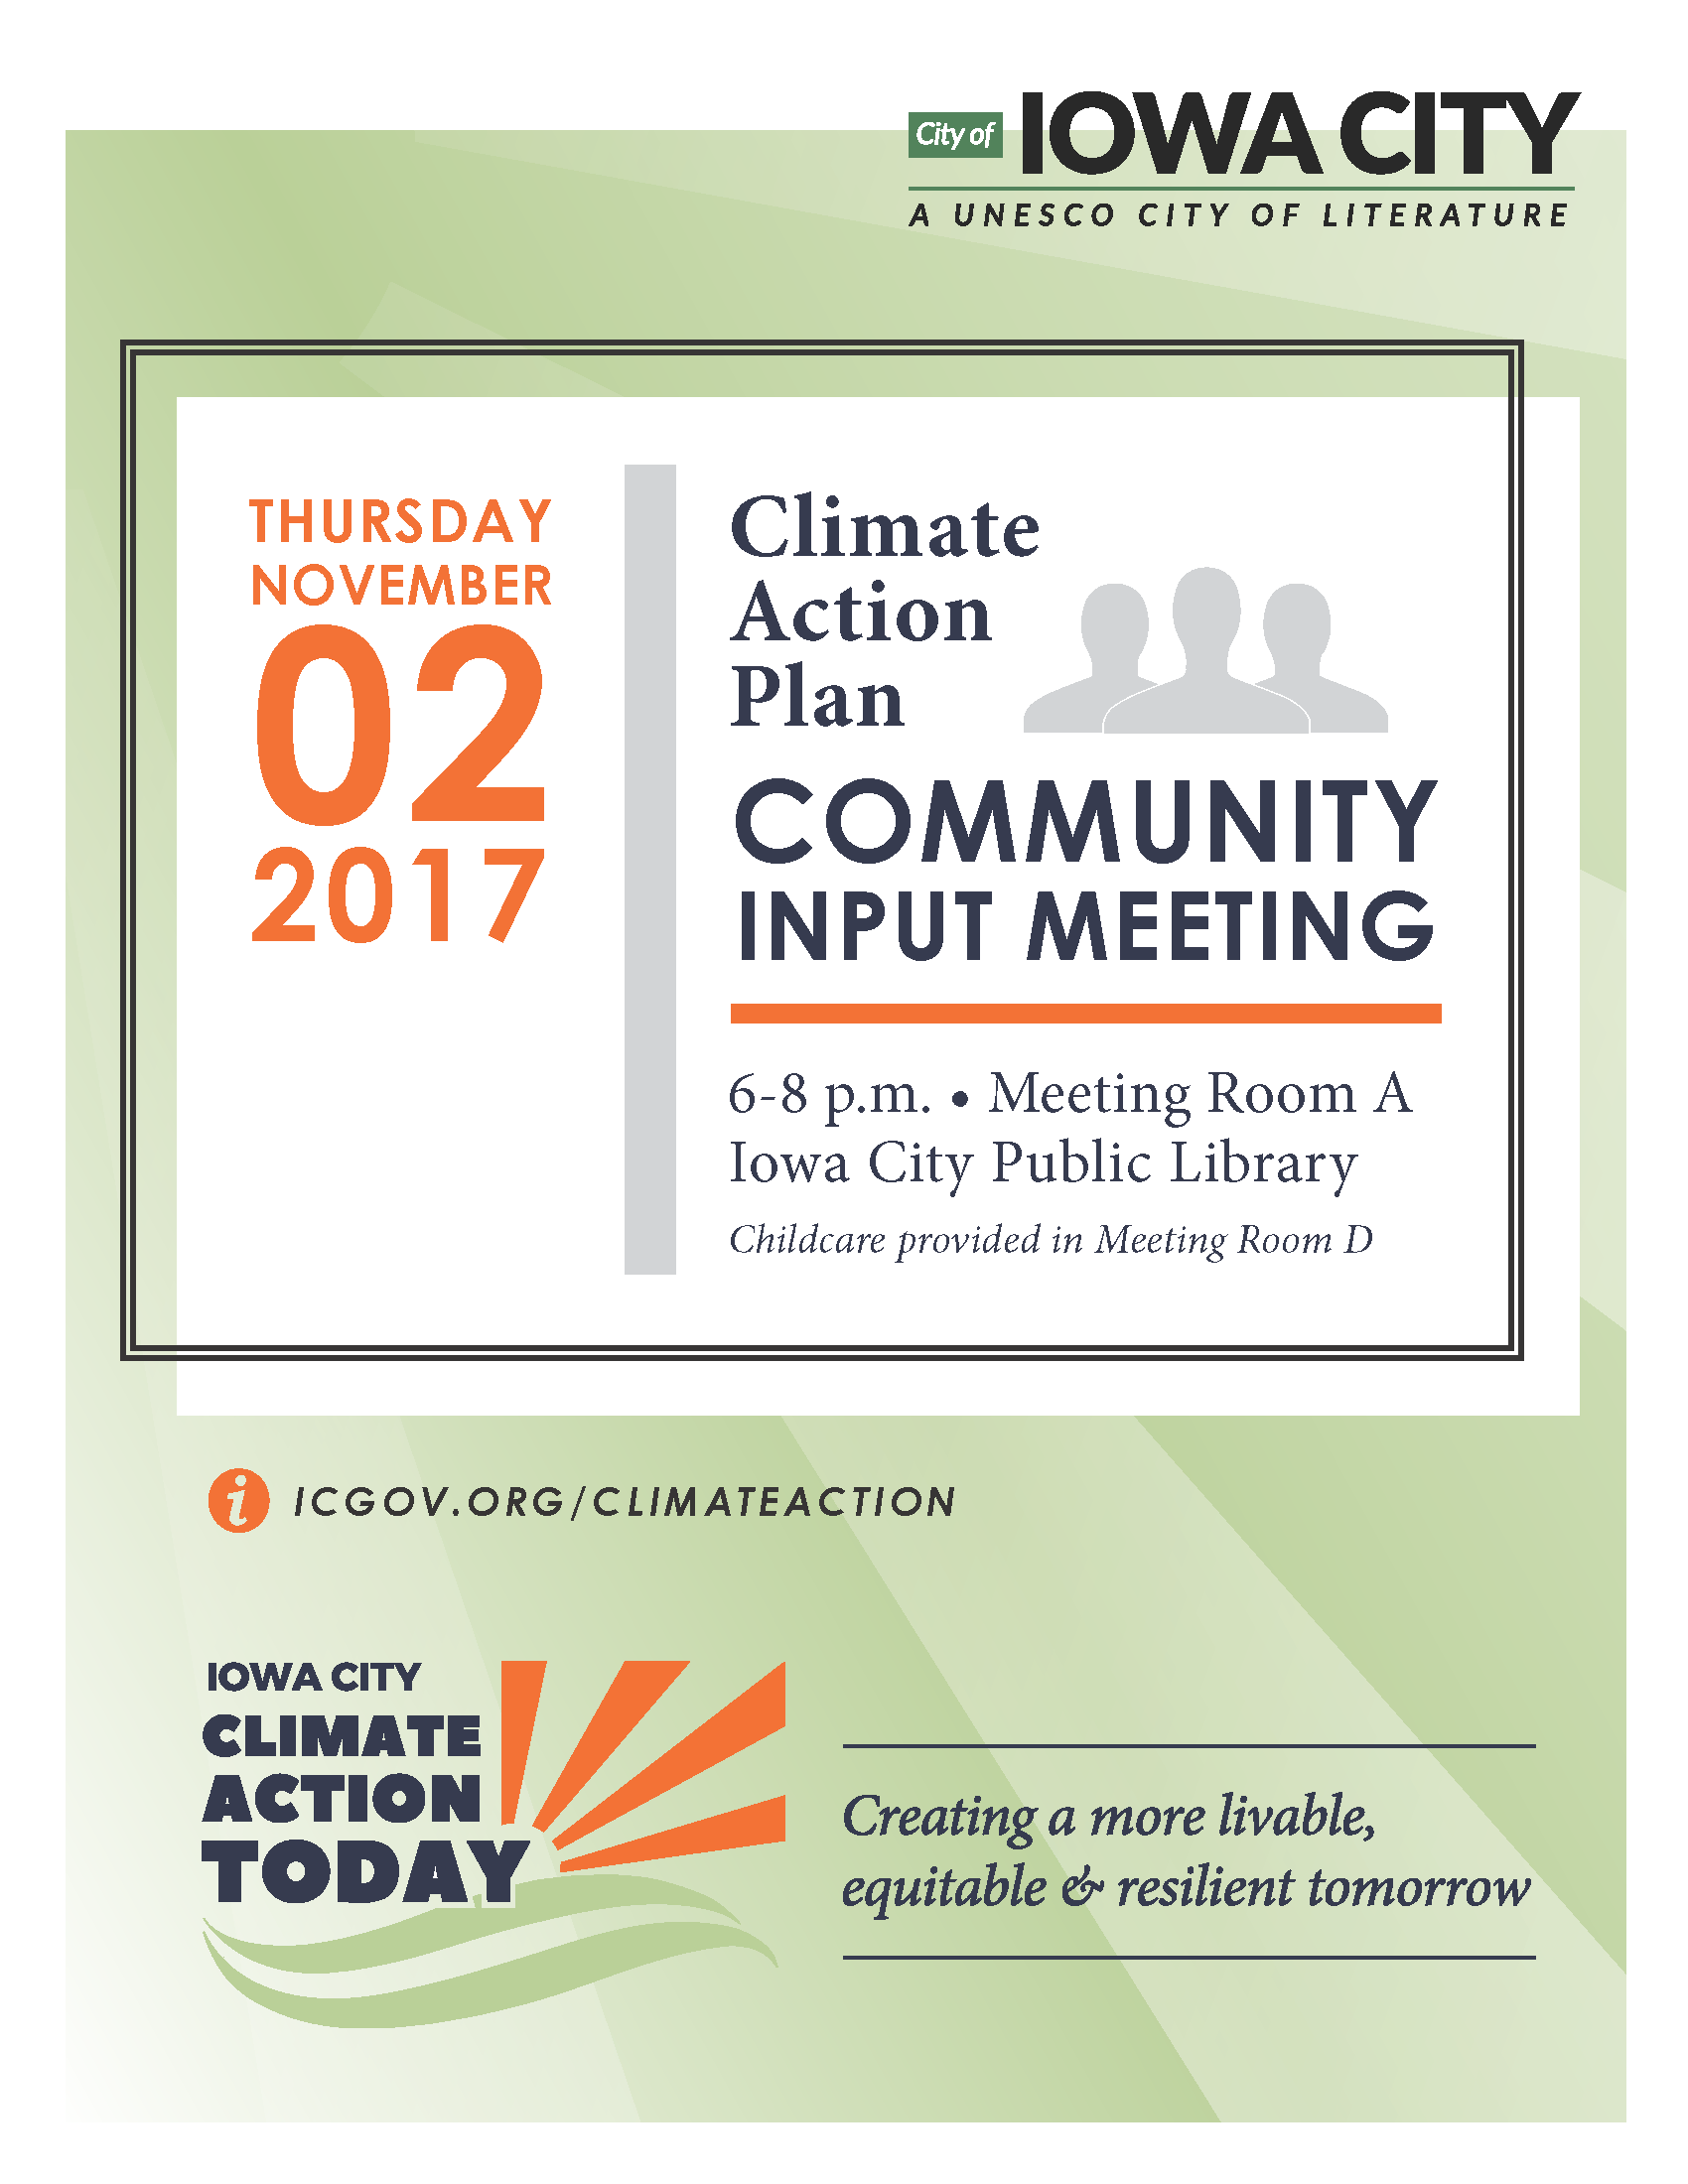 A poster promoting the community climate action meeting.